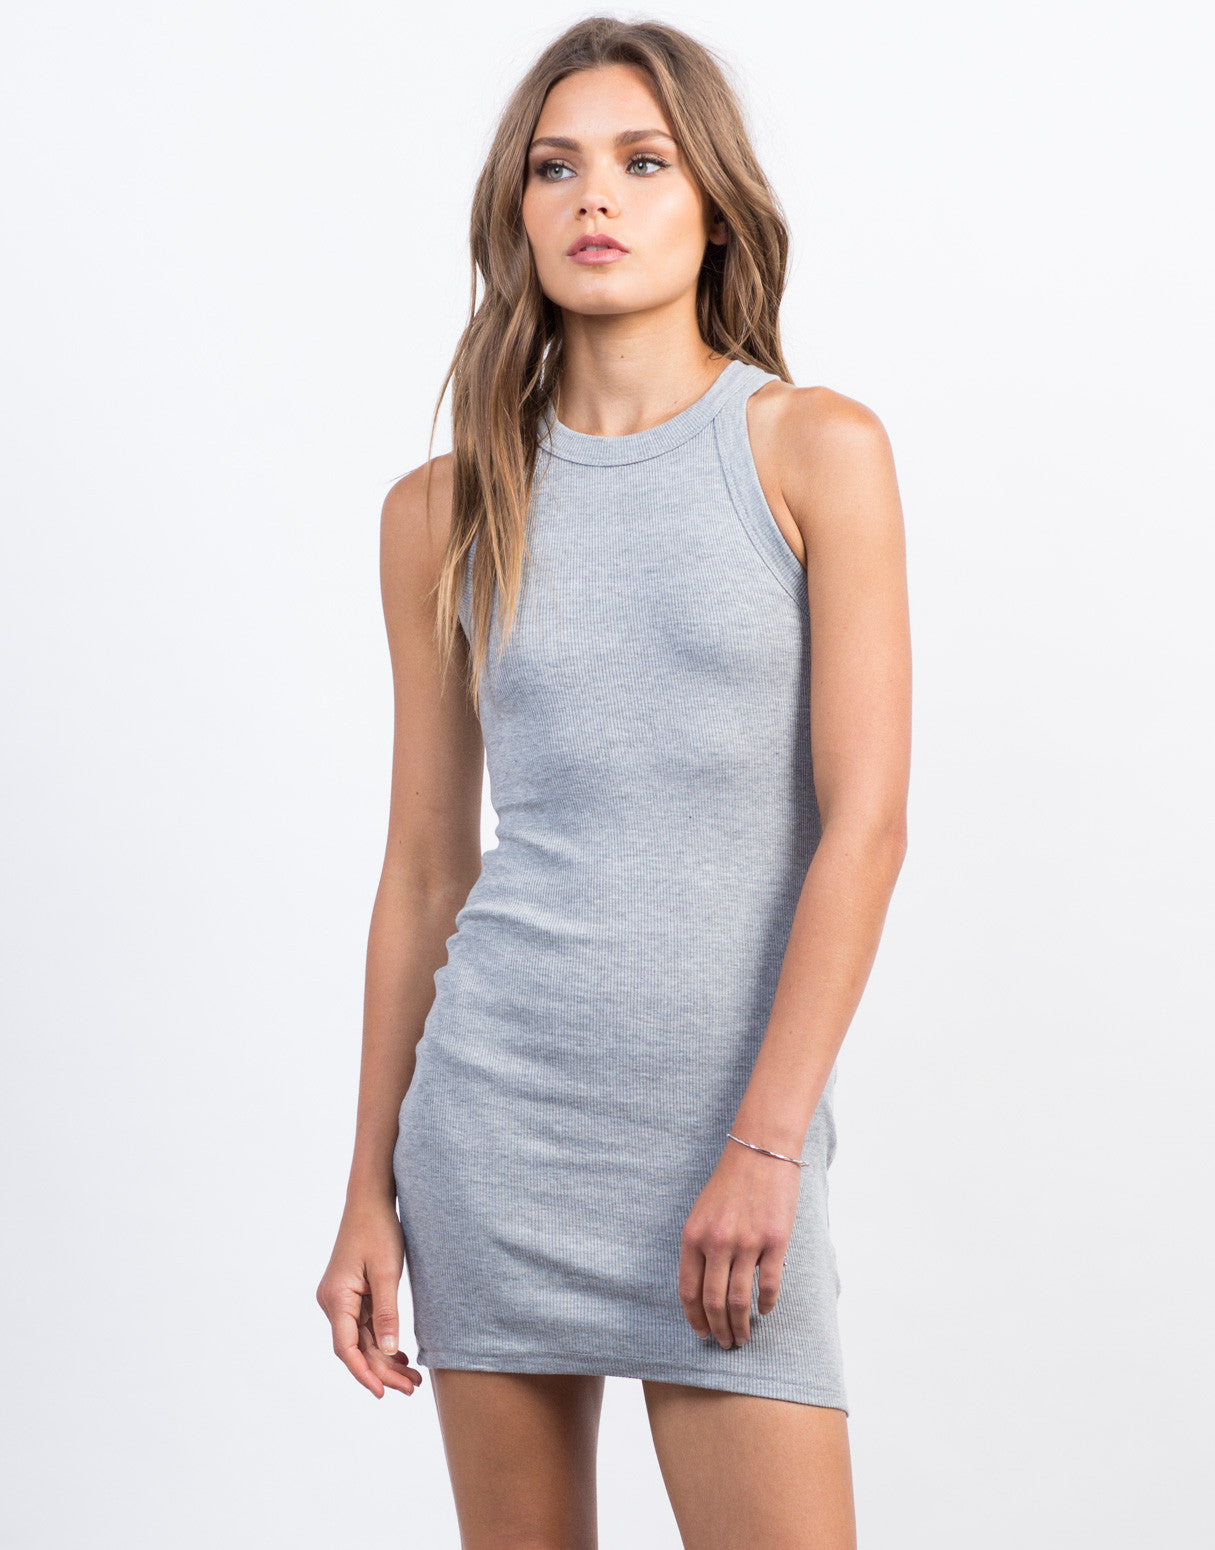 Ribbed Bodycon Tank Dress Racerback Dress Casual Day